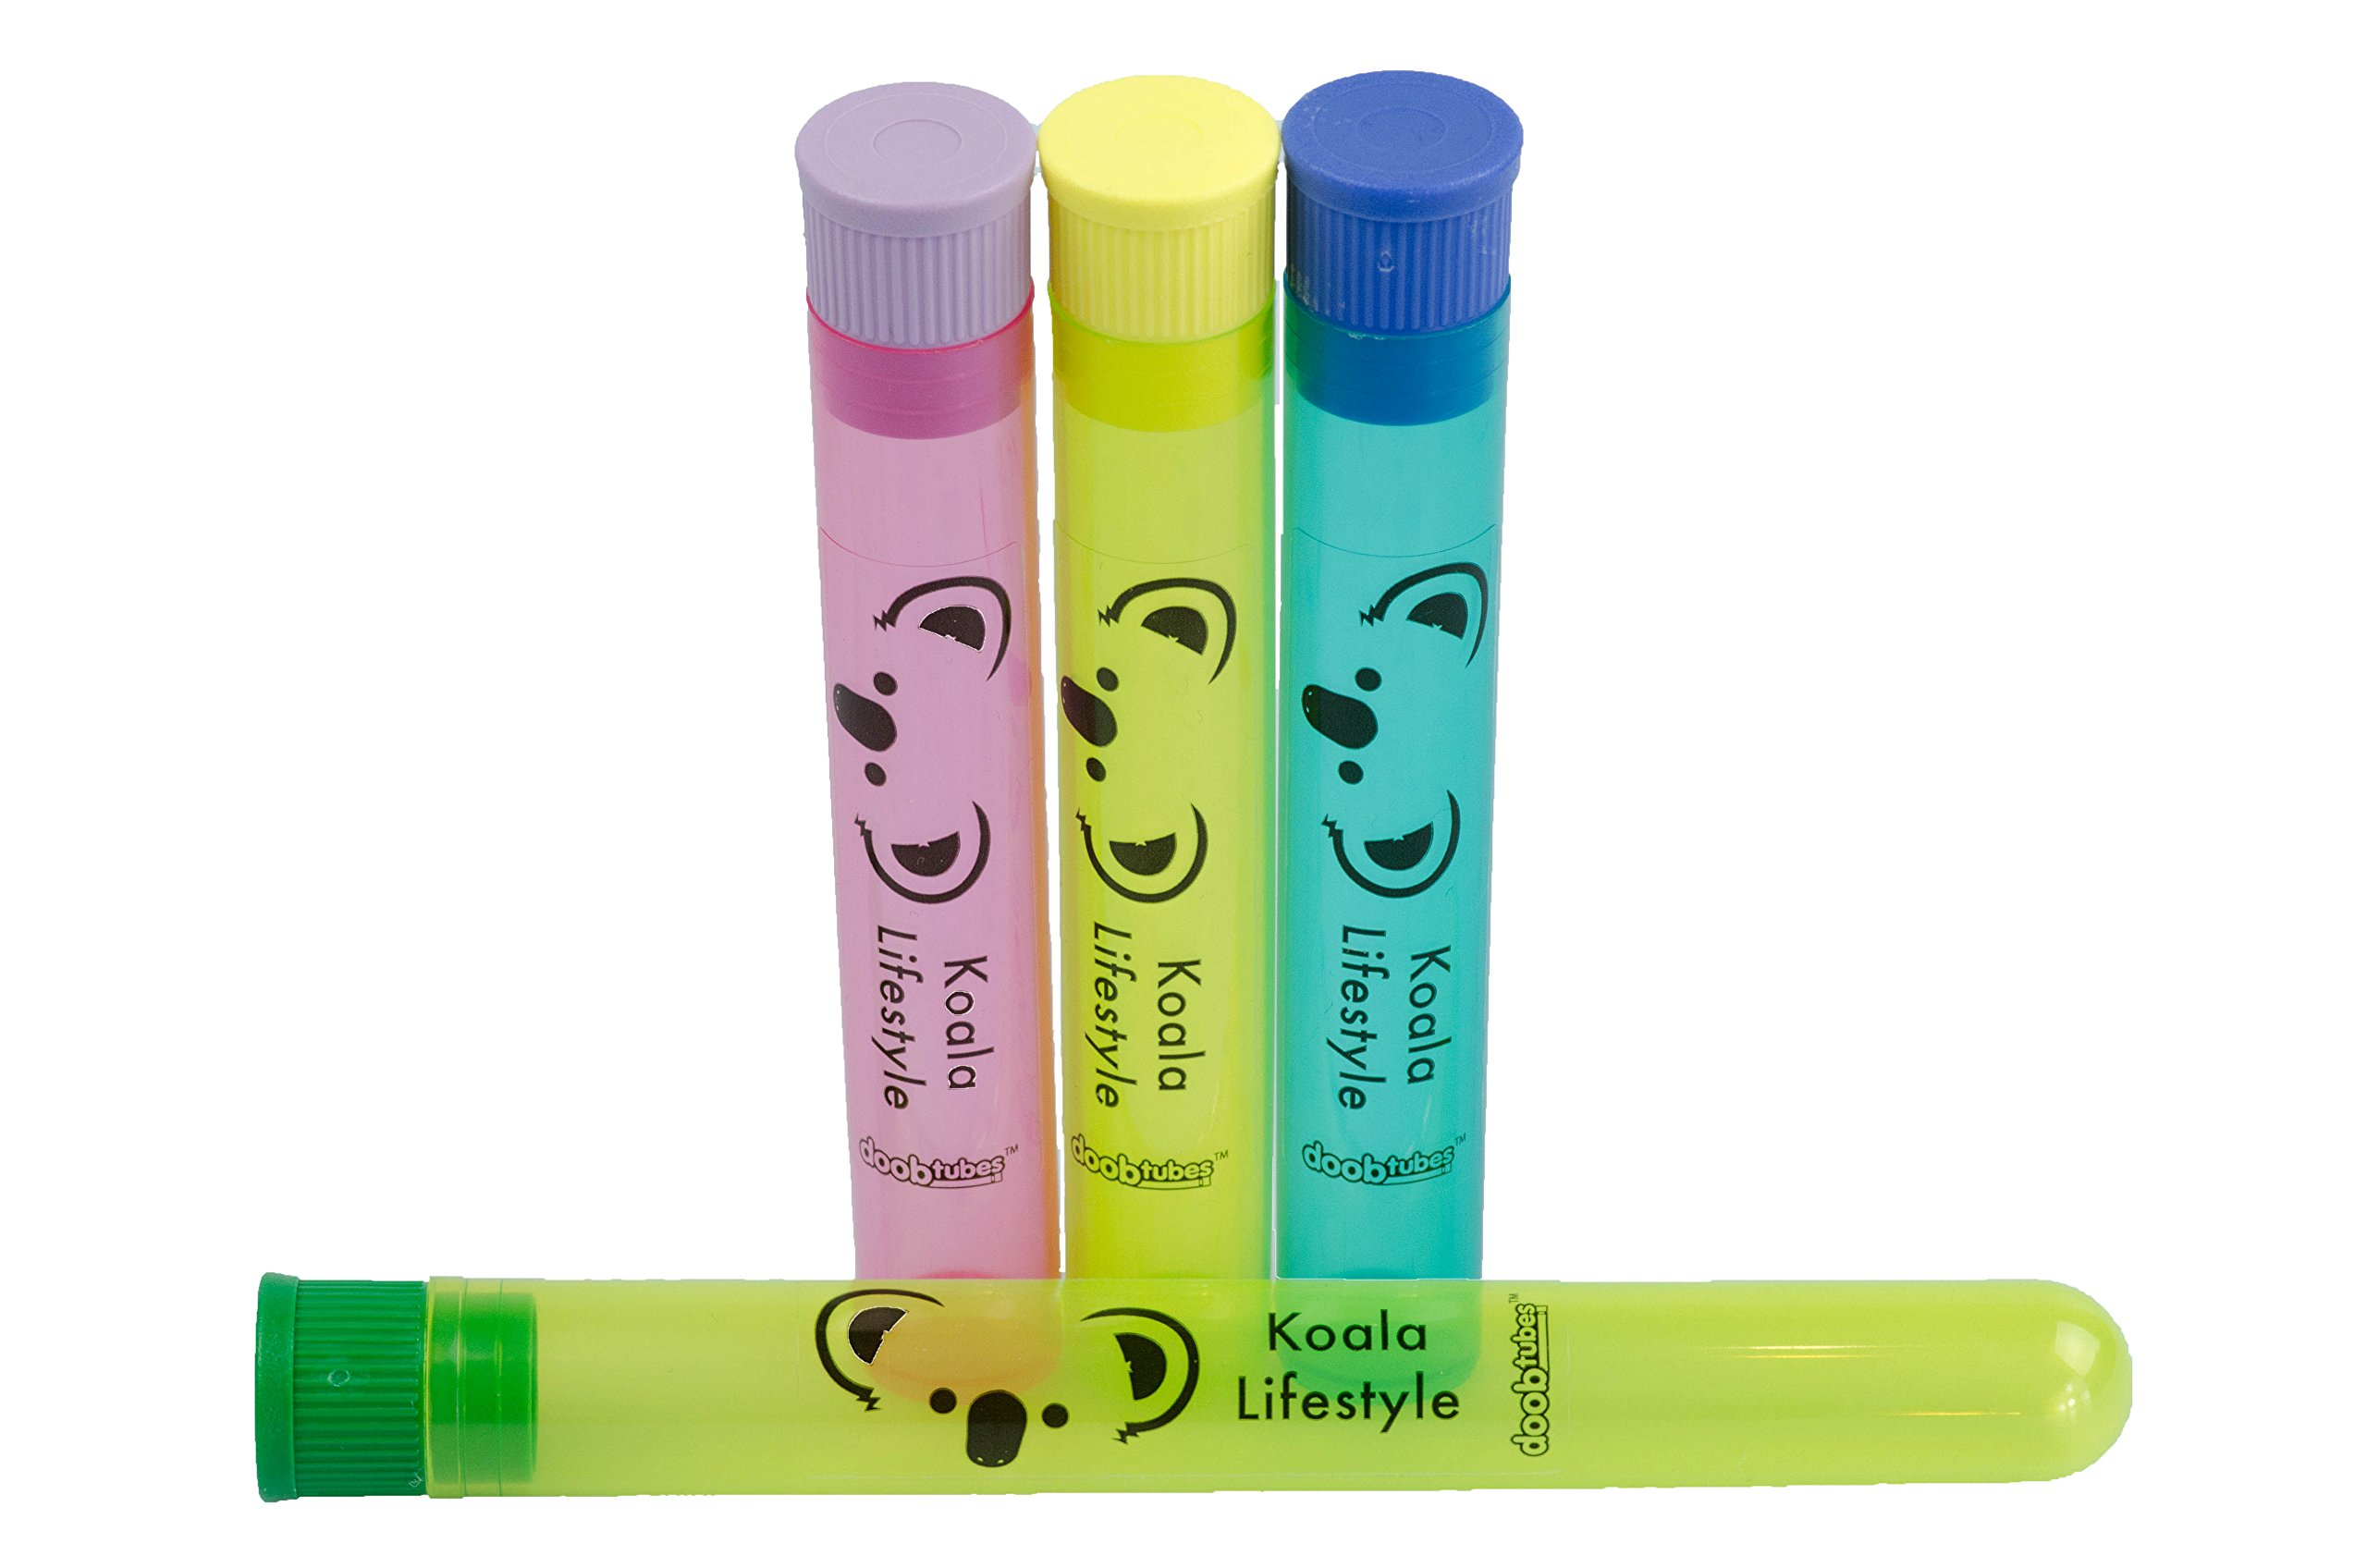 Juicy Jay's Mixed 1 1/4 Flavored Cigarette Rolling Papers Variety Pack (32 Pack x 6 = 192 Papers)   Bundle with 4 Koala Doob Tubes - Classics Flavor by Koala Lifestyle